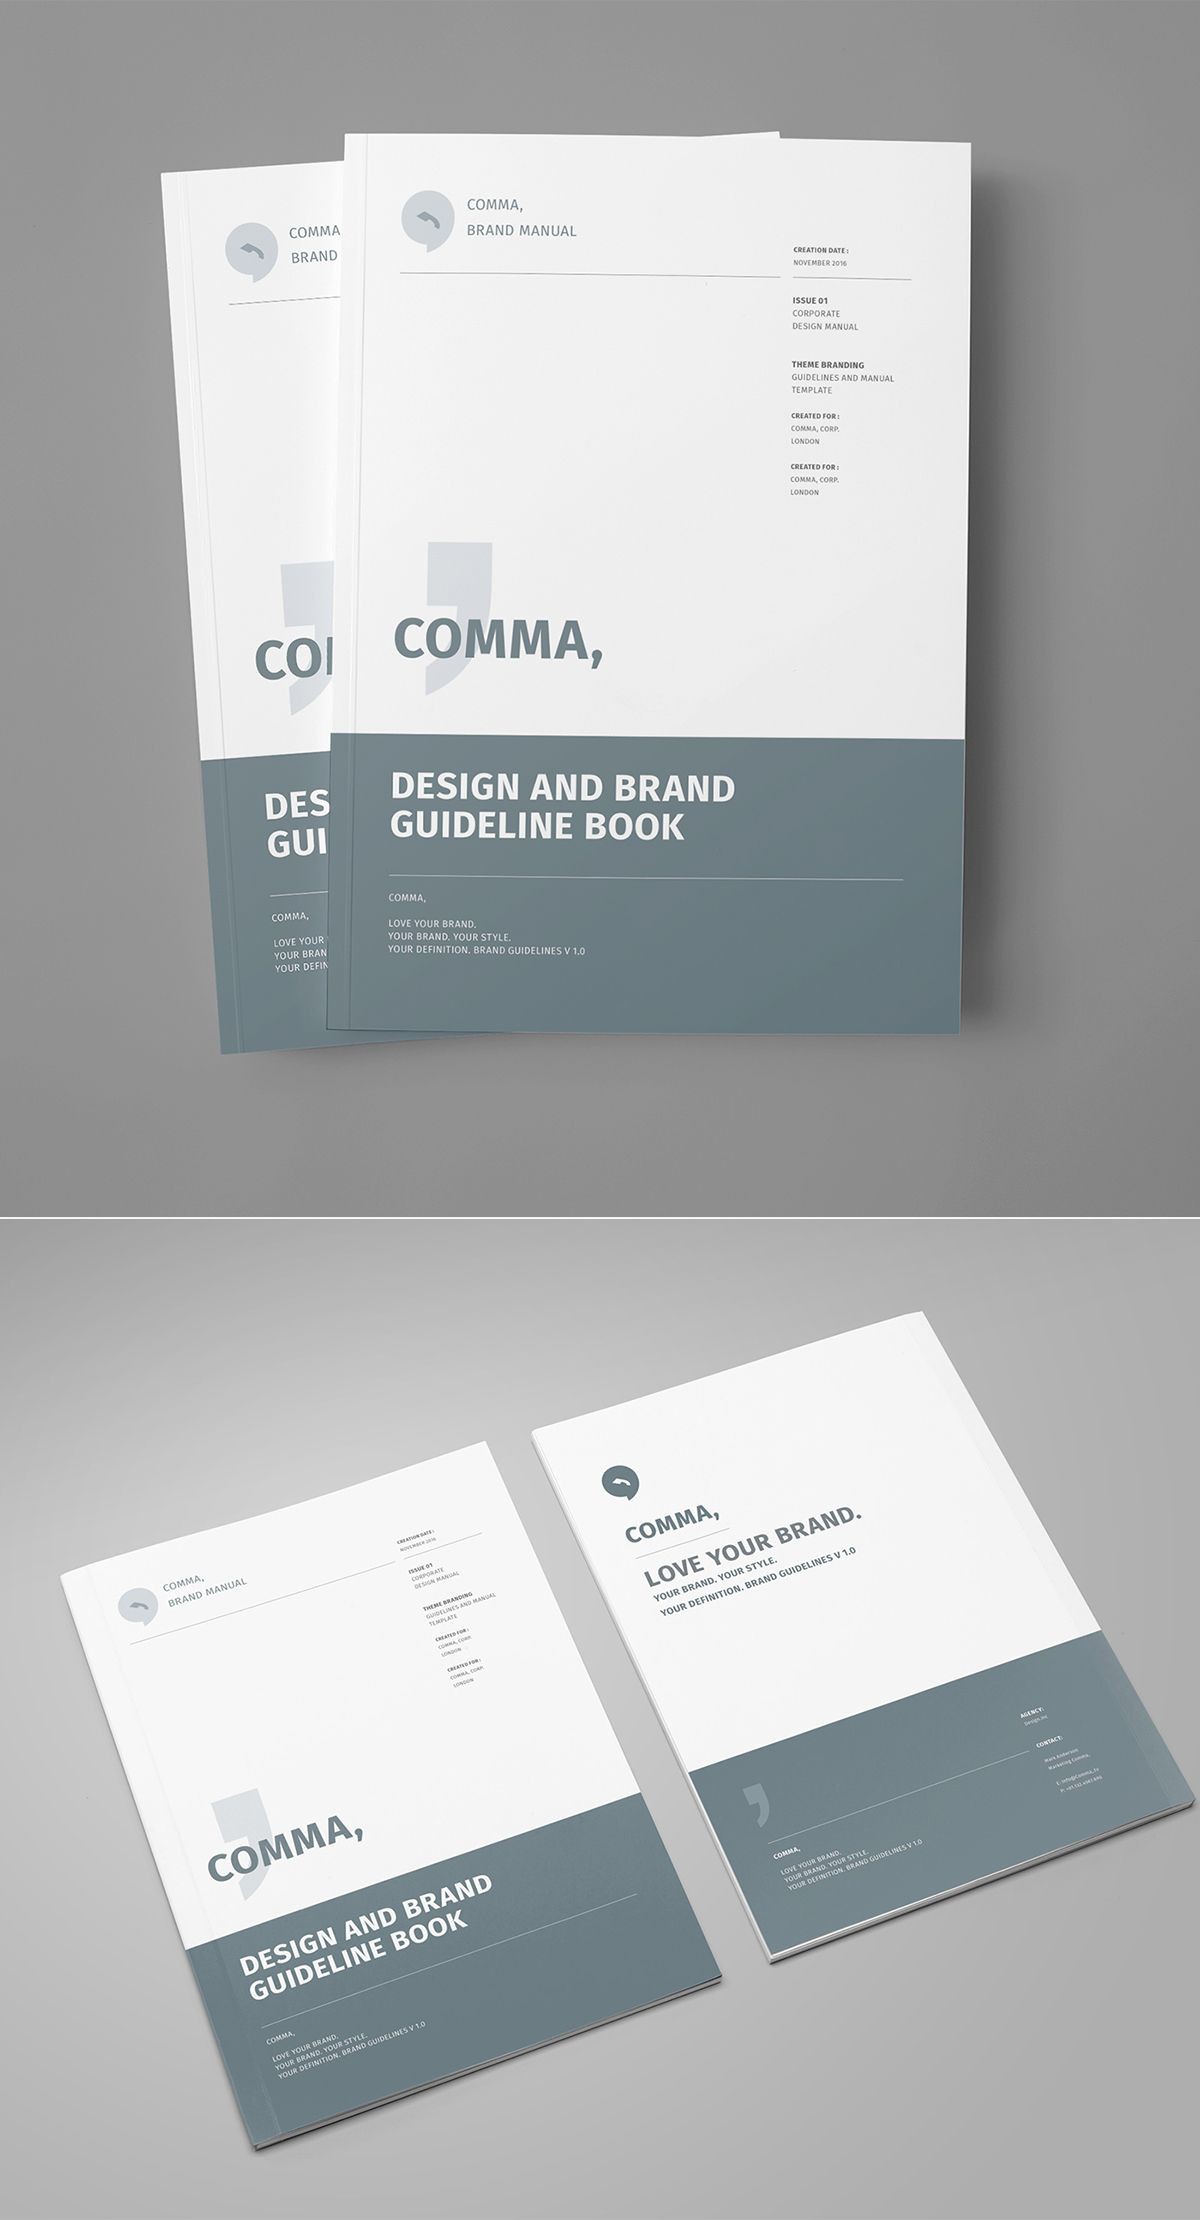 Manual Design Templates Brand Manual On Behance  Brand Manual Design  Pinterest  Brand .